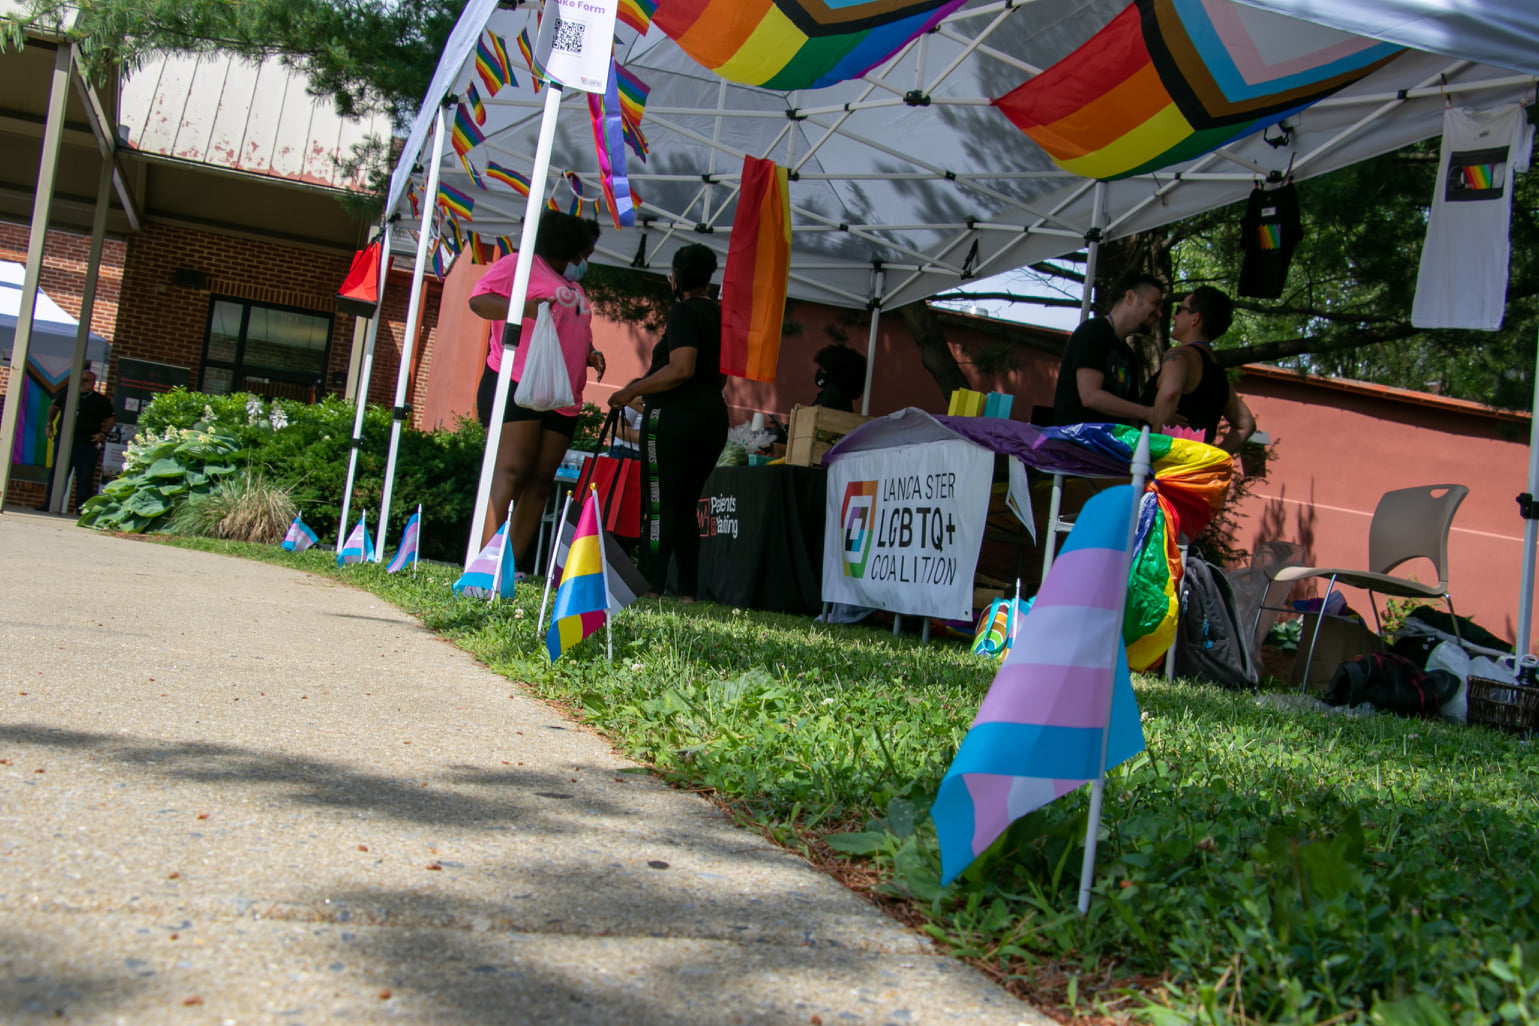 """Participants in the LGBTQ+ Vaccine Clinic """"Vogue, Vaccines & Visibility"""" check out the materials at the Lancaster LGBTQ's table on Saturday, June 12, 2021. (Source: Lancaster LGBTQ+ Coalition)"""